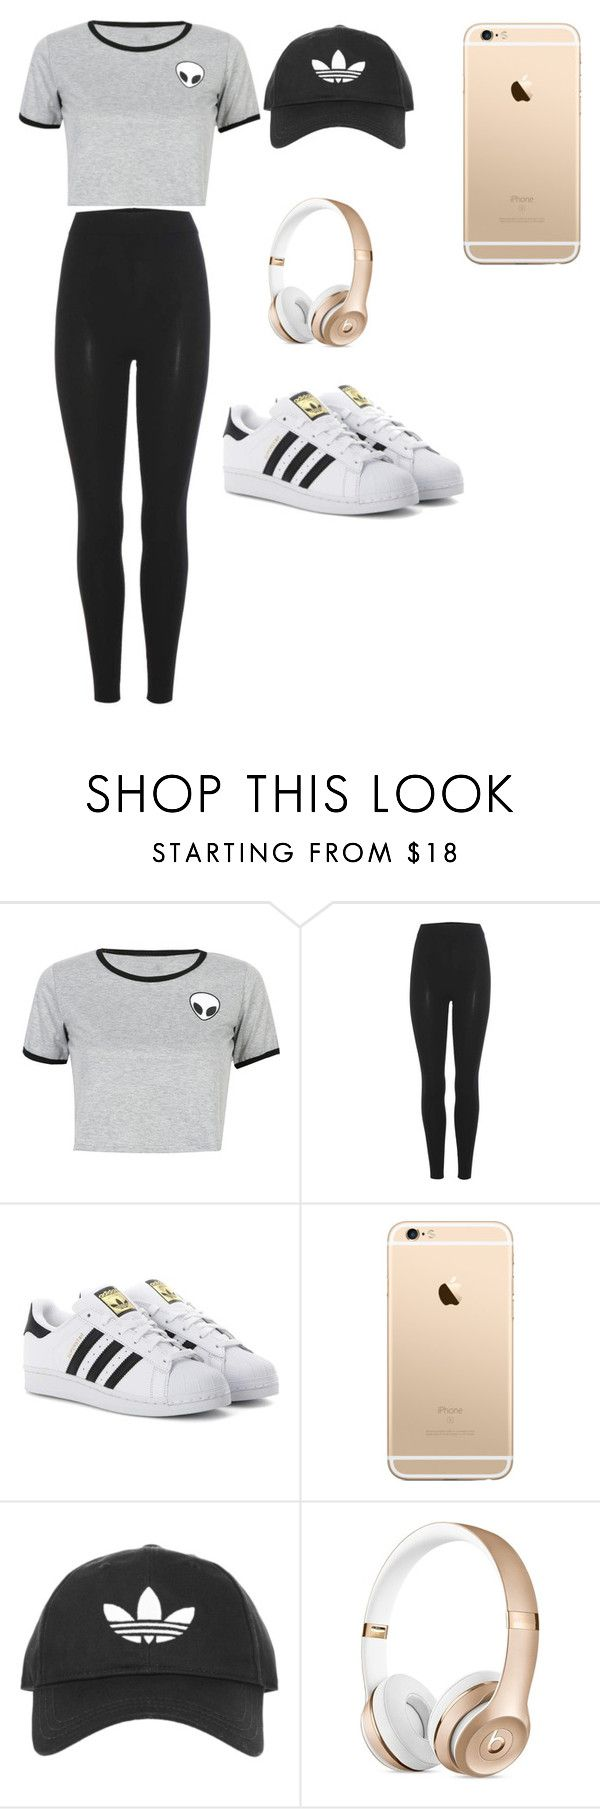 """hang out?"" by alayjablackmon on Polyvore featuring WithChic, adidas Originals and Topshop"